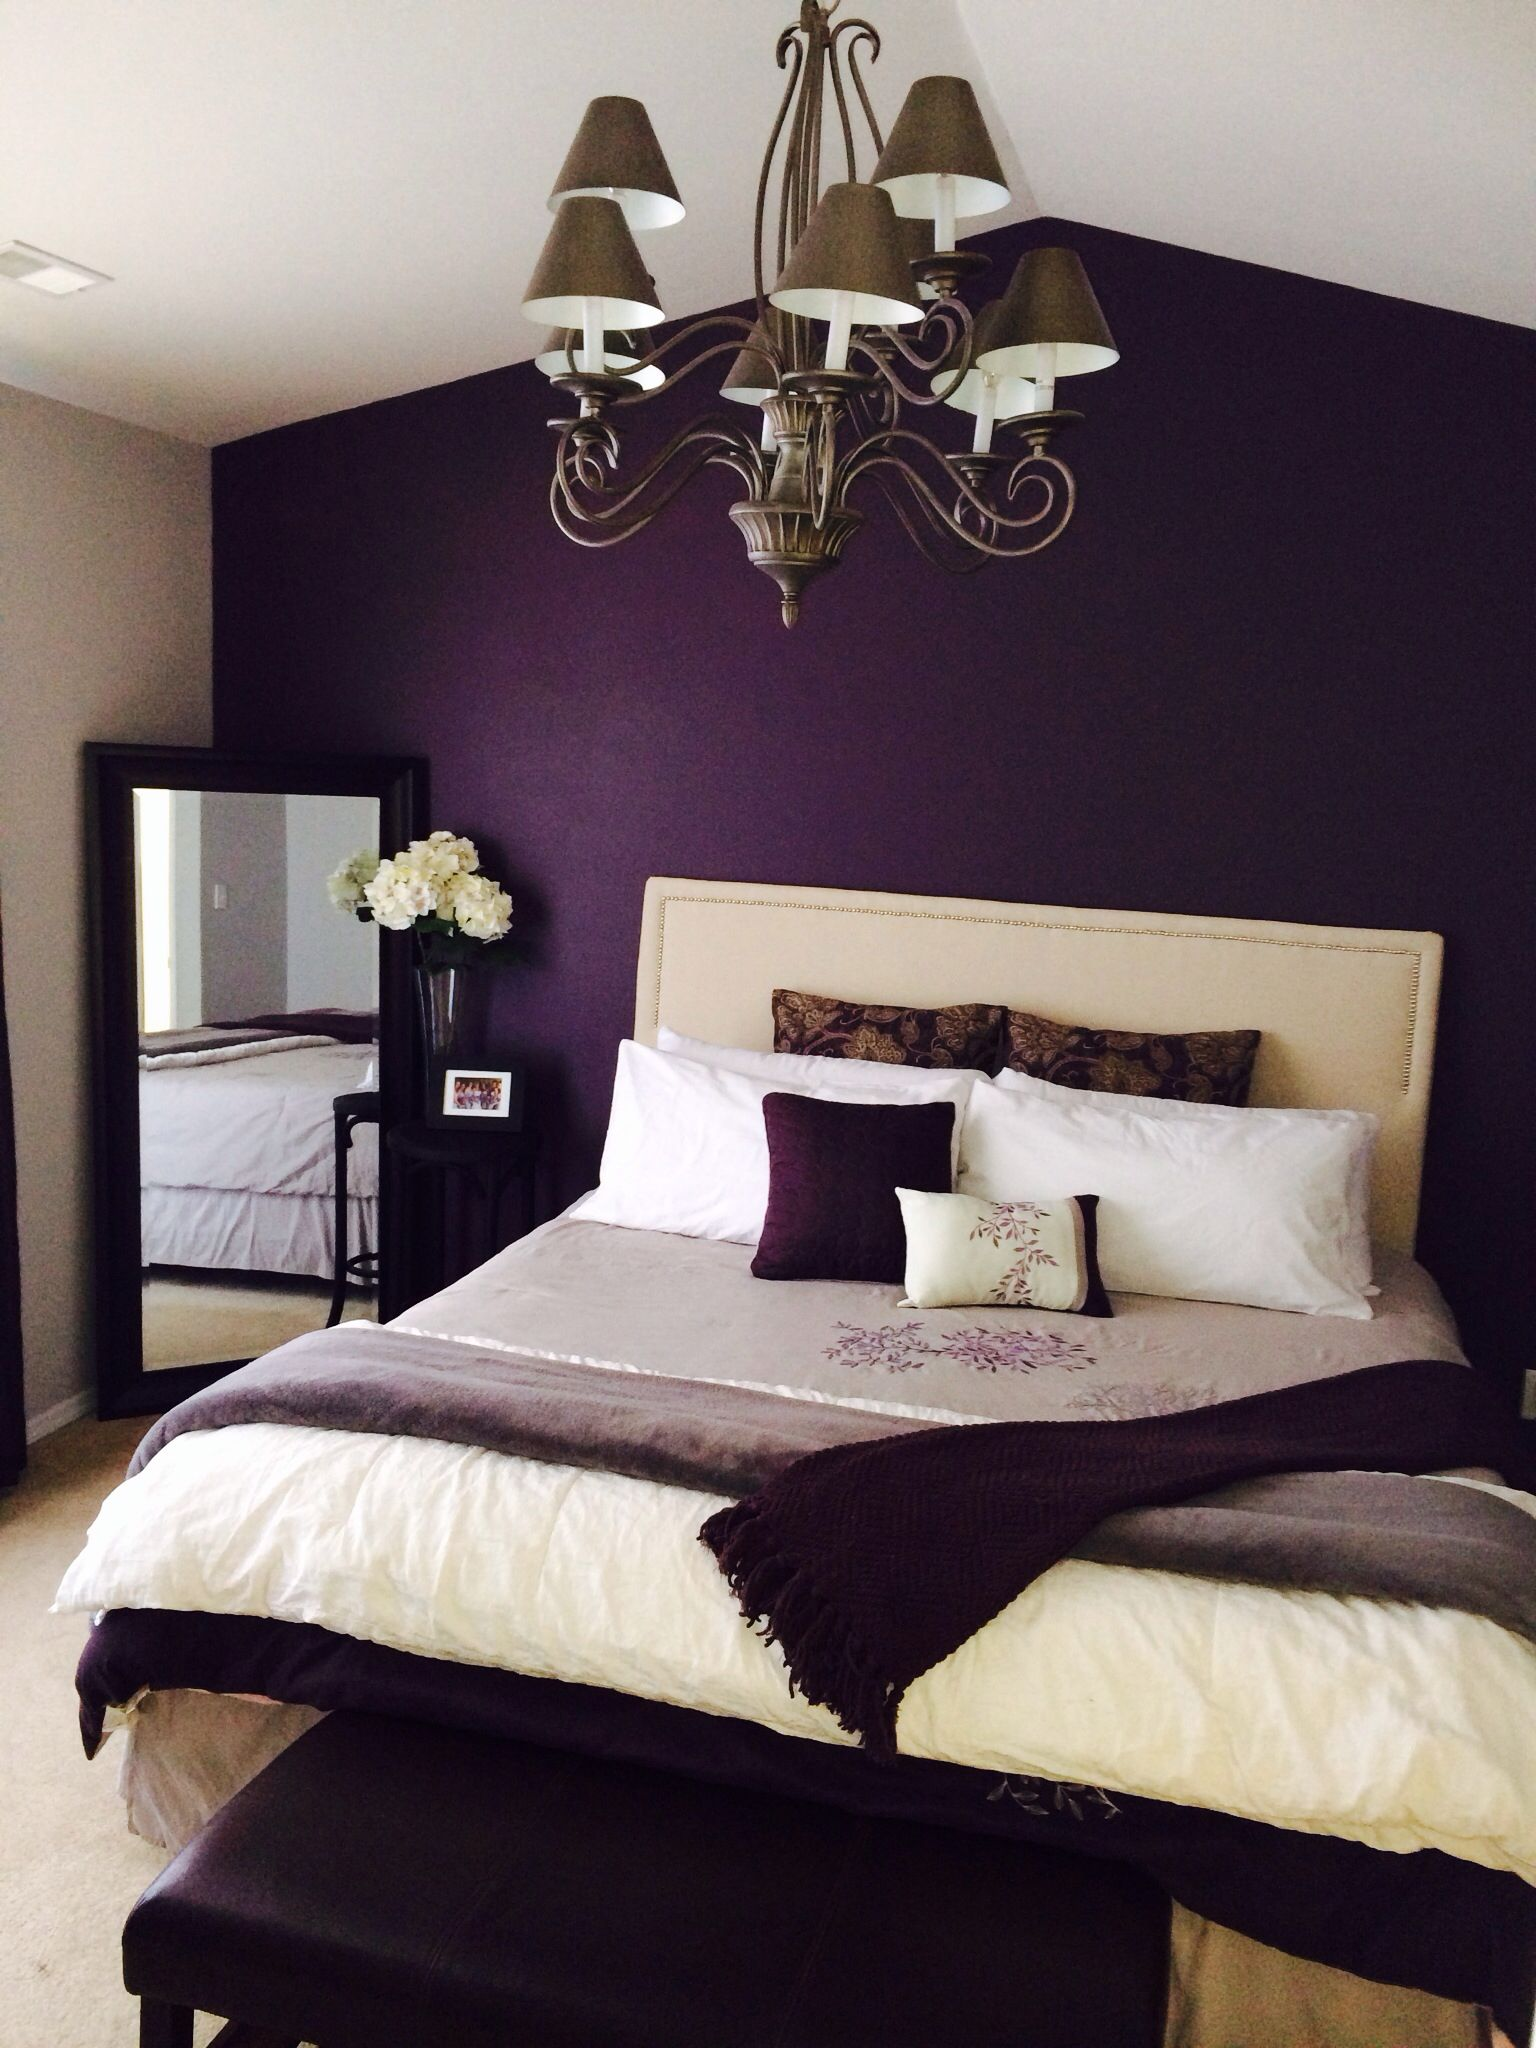 latest 30 romantic bedroom ideas to make the love happen - Violet Hotel Decor